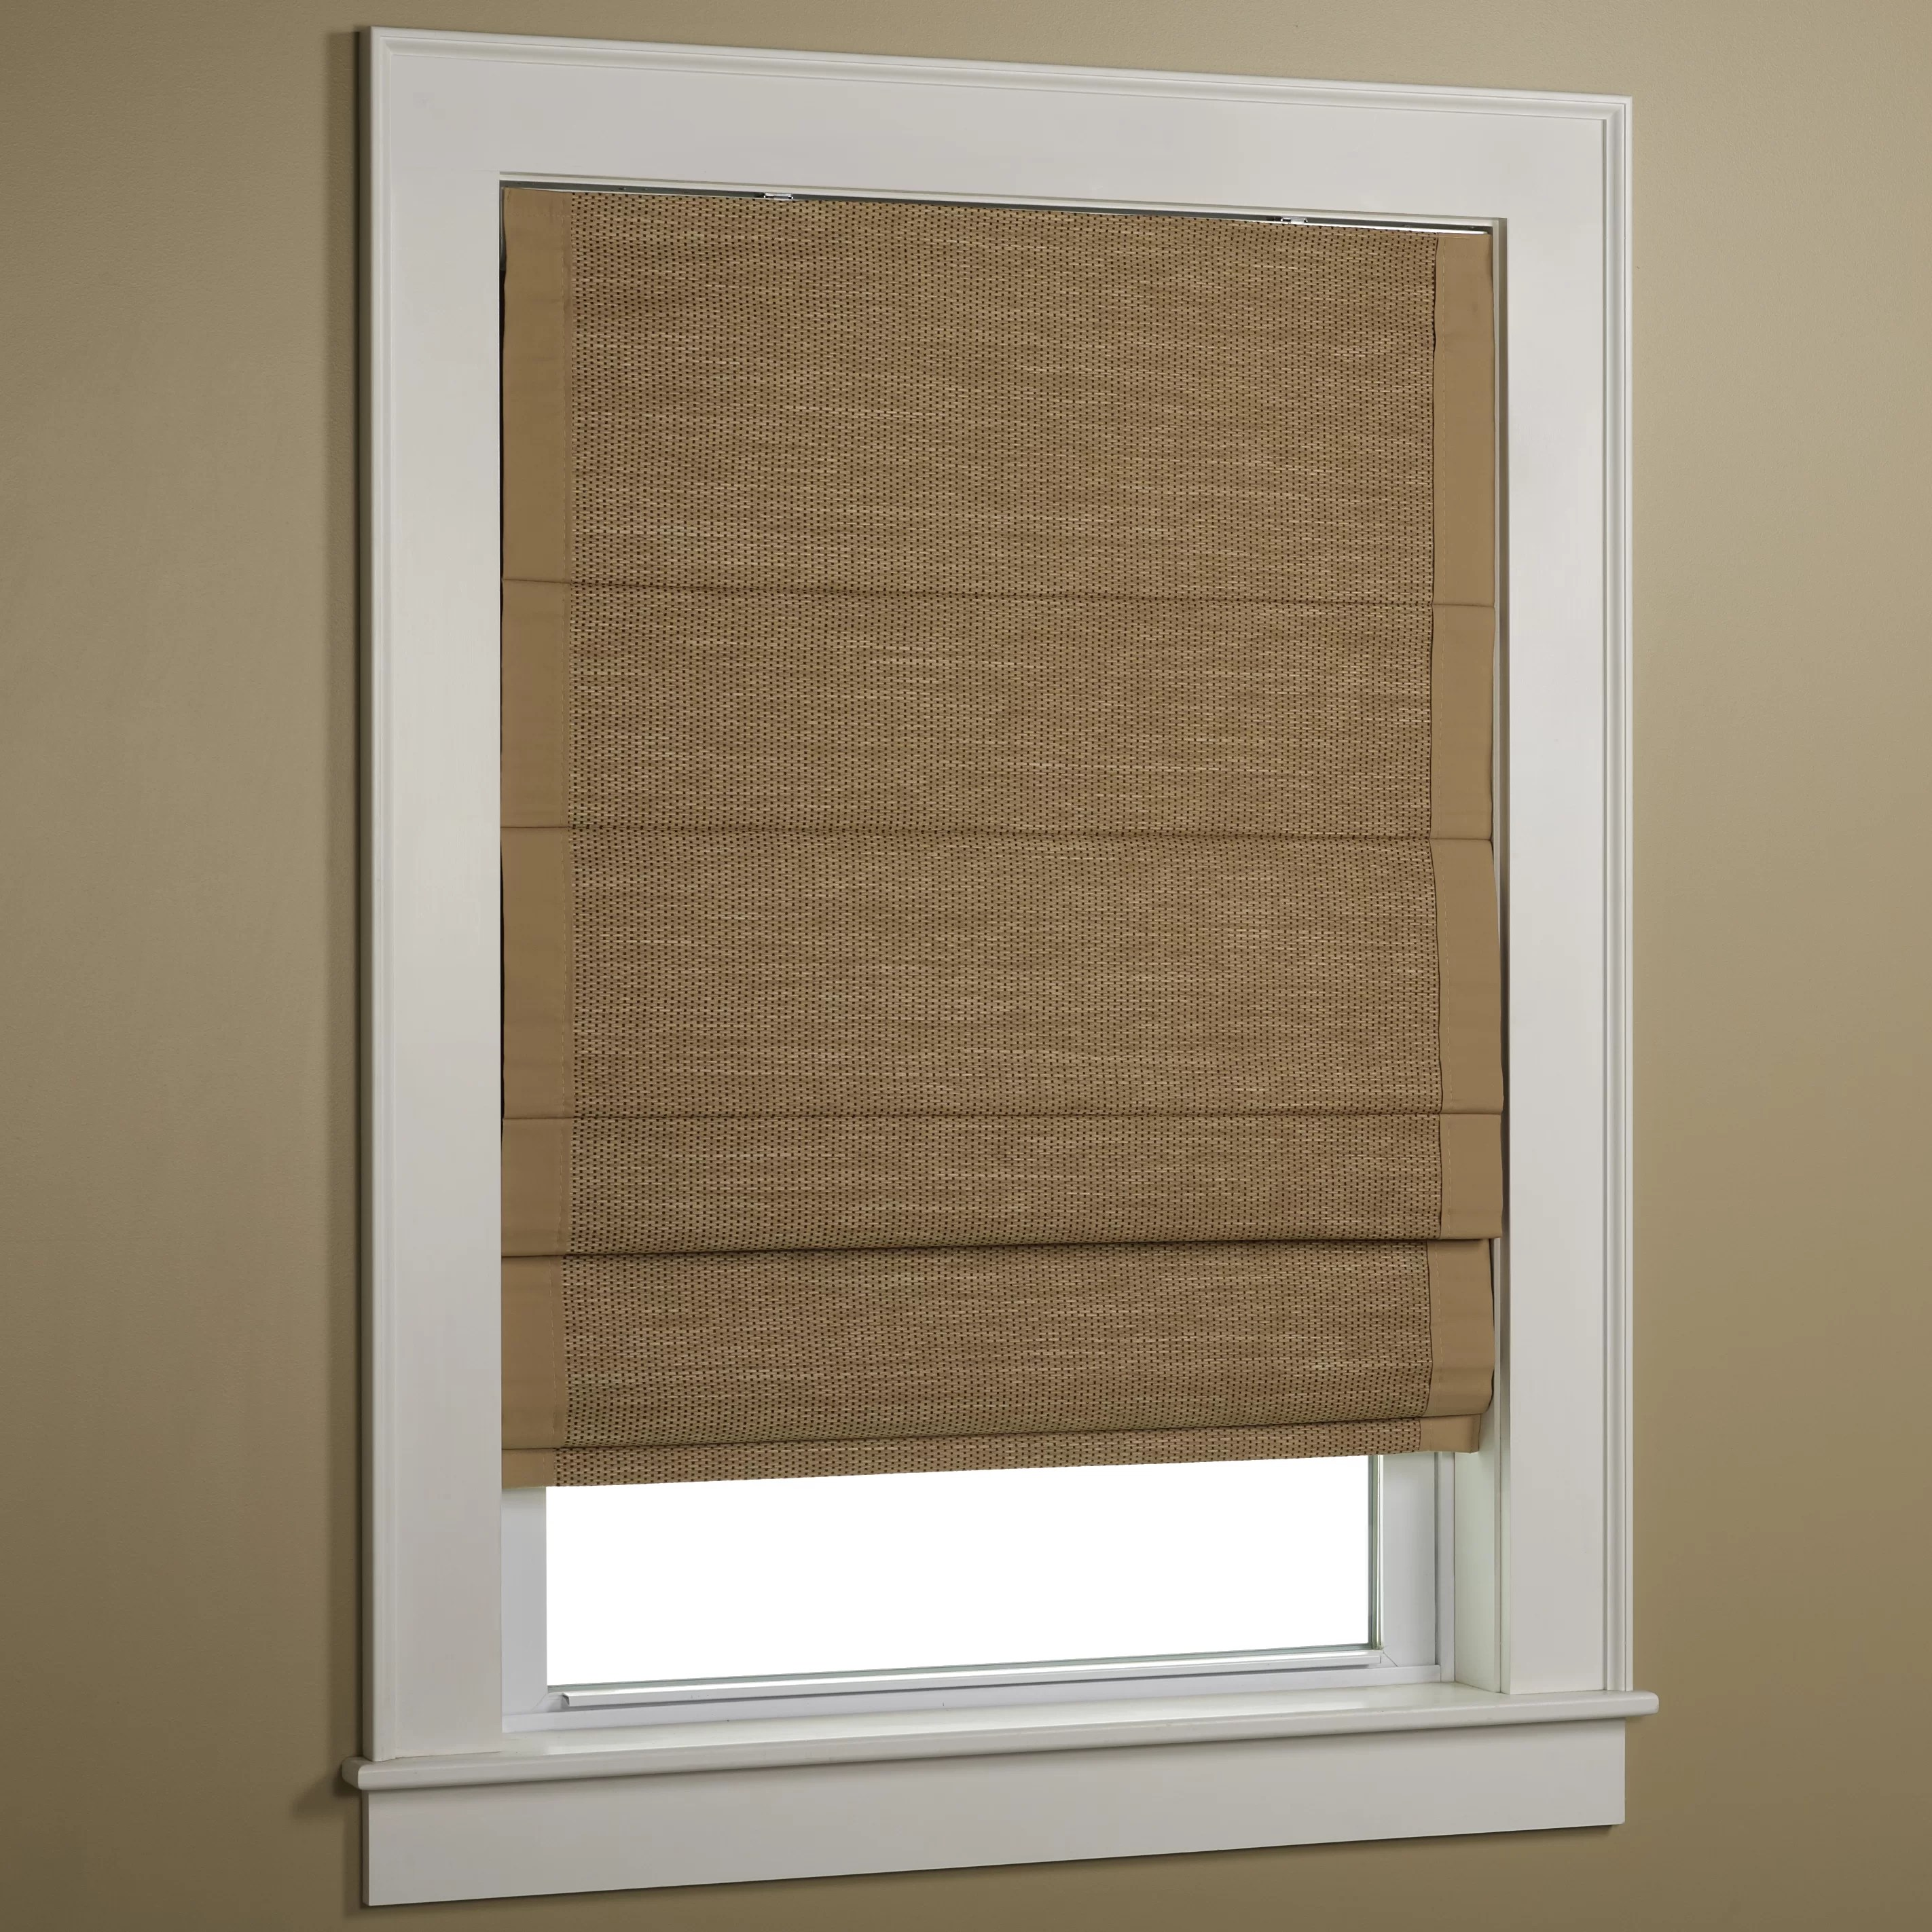 Where To Buy Roman Shades Beachcrest Home Woven Cane Paper Roman Shade And Reviews